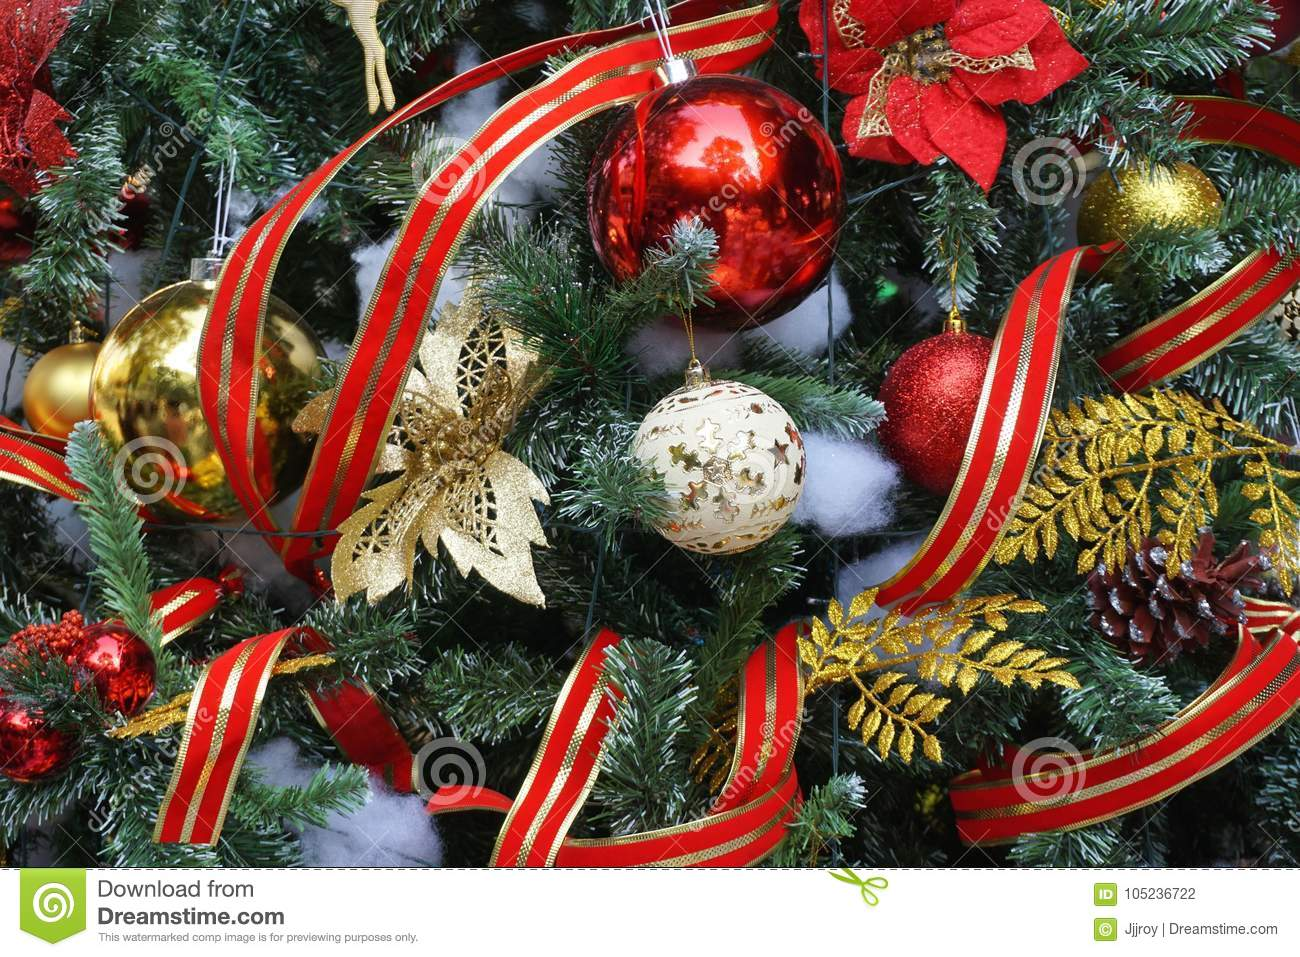 53 258 Christmas Tree Gold Ribbon Photos Free Royalty Free Stock Photos From Dreamstime